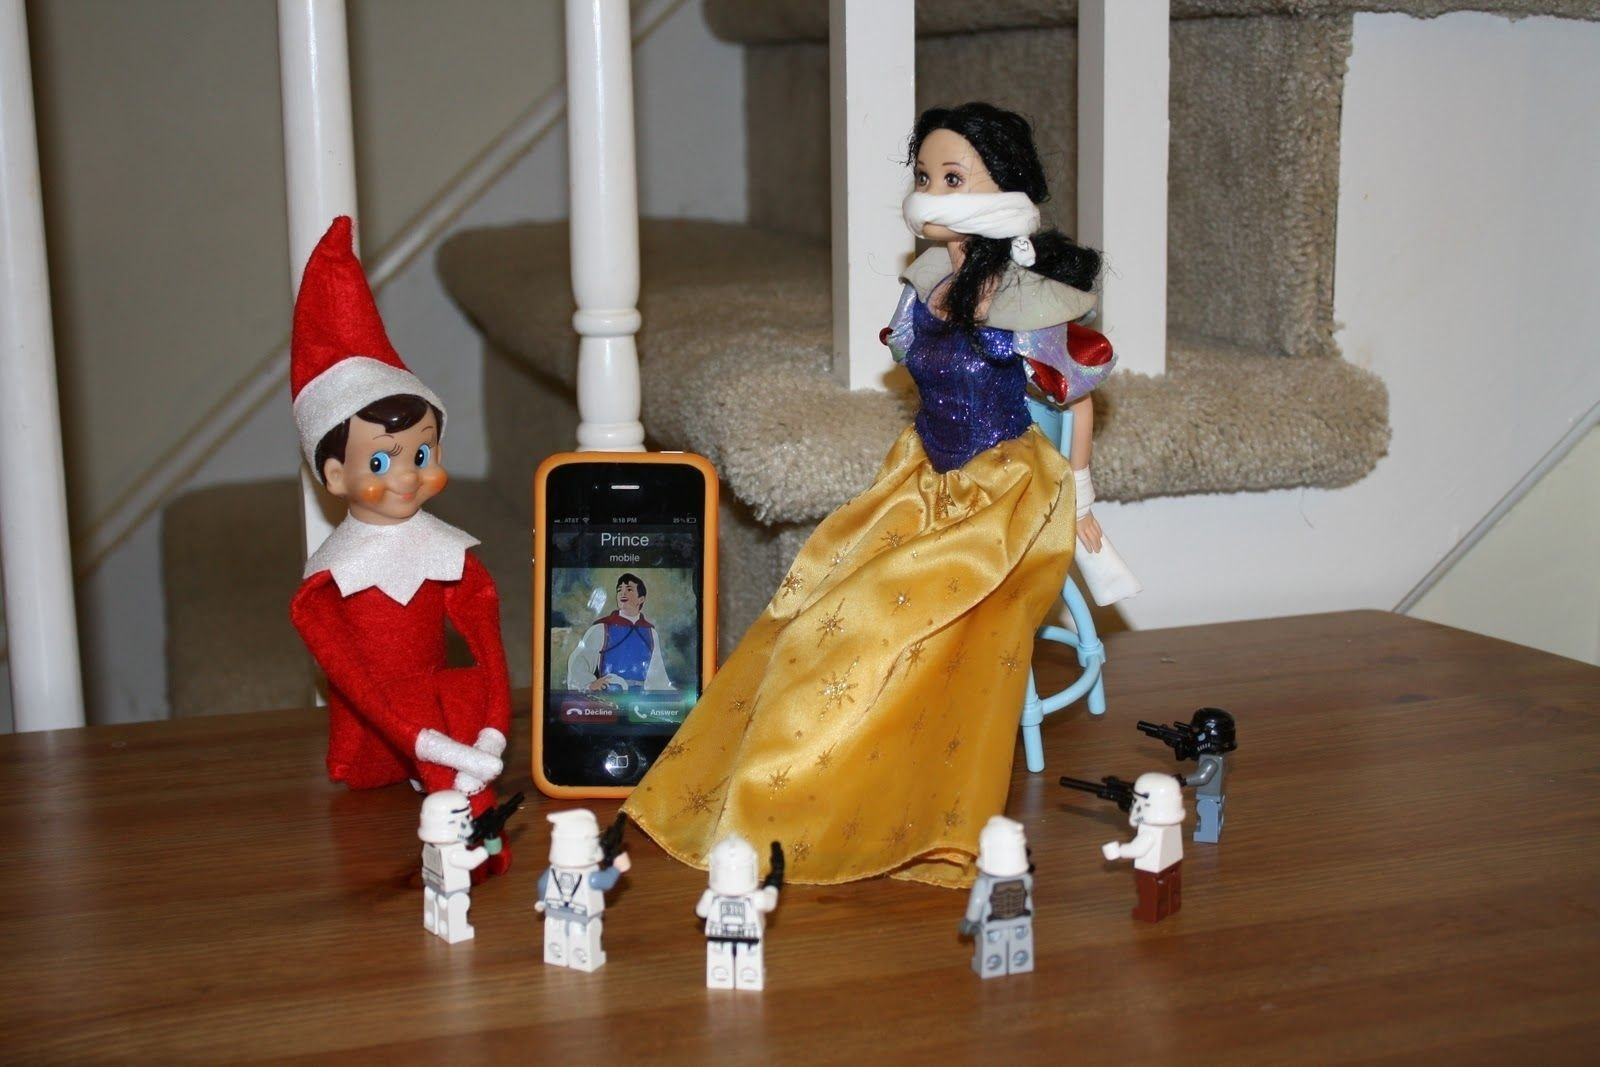 10 Nice Naughty Elf On The Shelf Ideas snow white kidnapped monica pinterest snow white naughty elf 2021